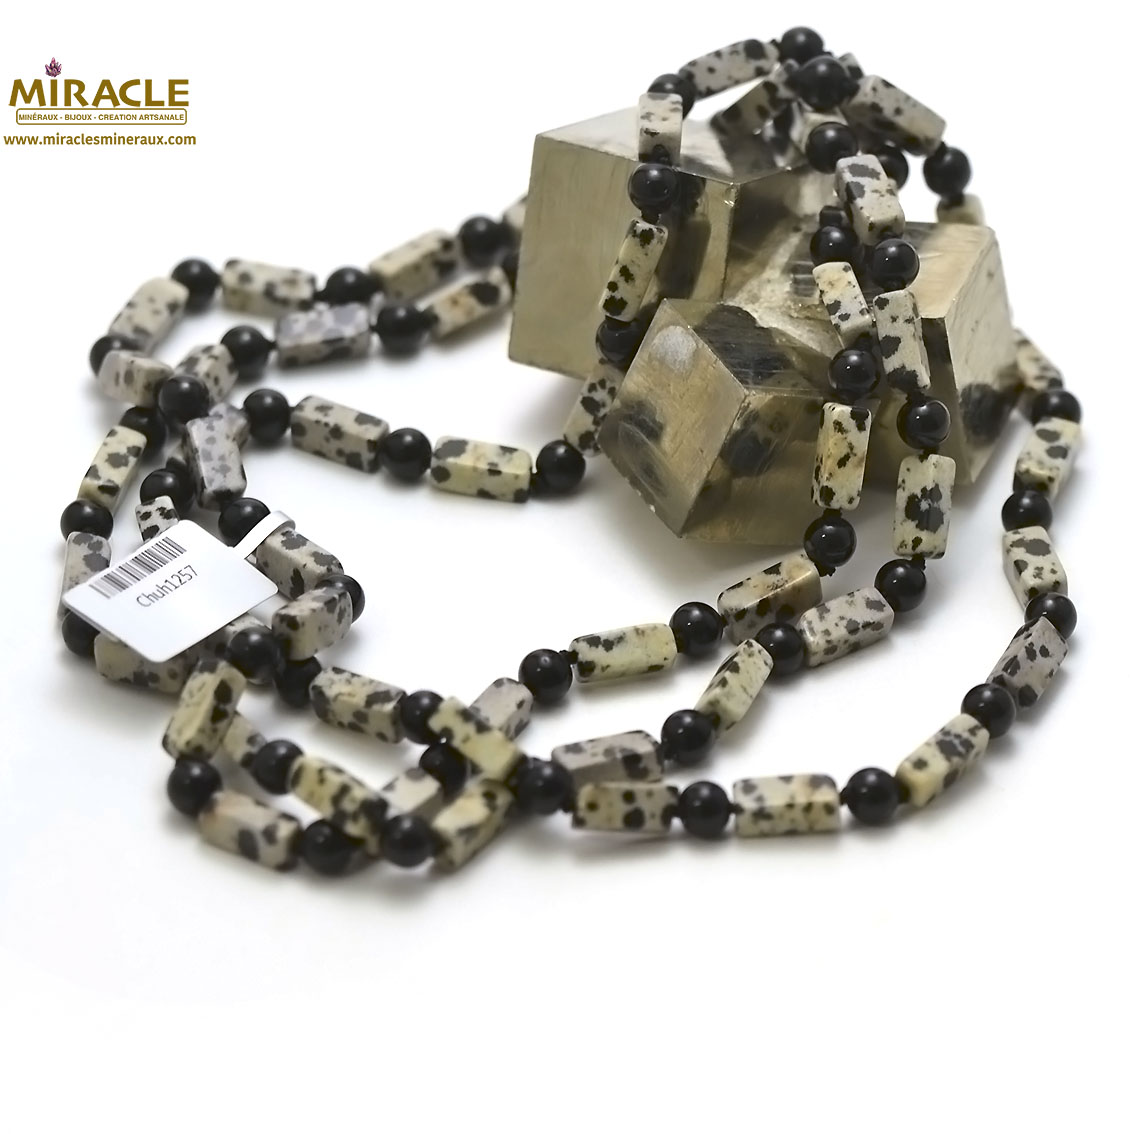 Collier long/sautoir en pierre naturelle obsidienne neige/onyx rectangle 12x5x5 mm, 120cm